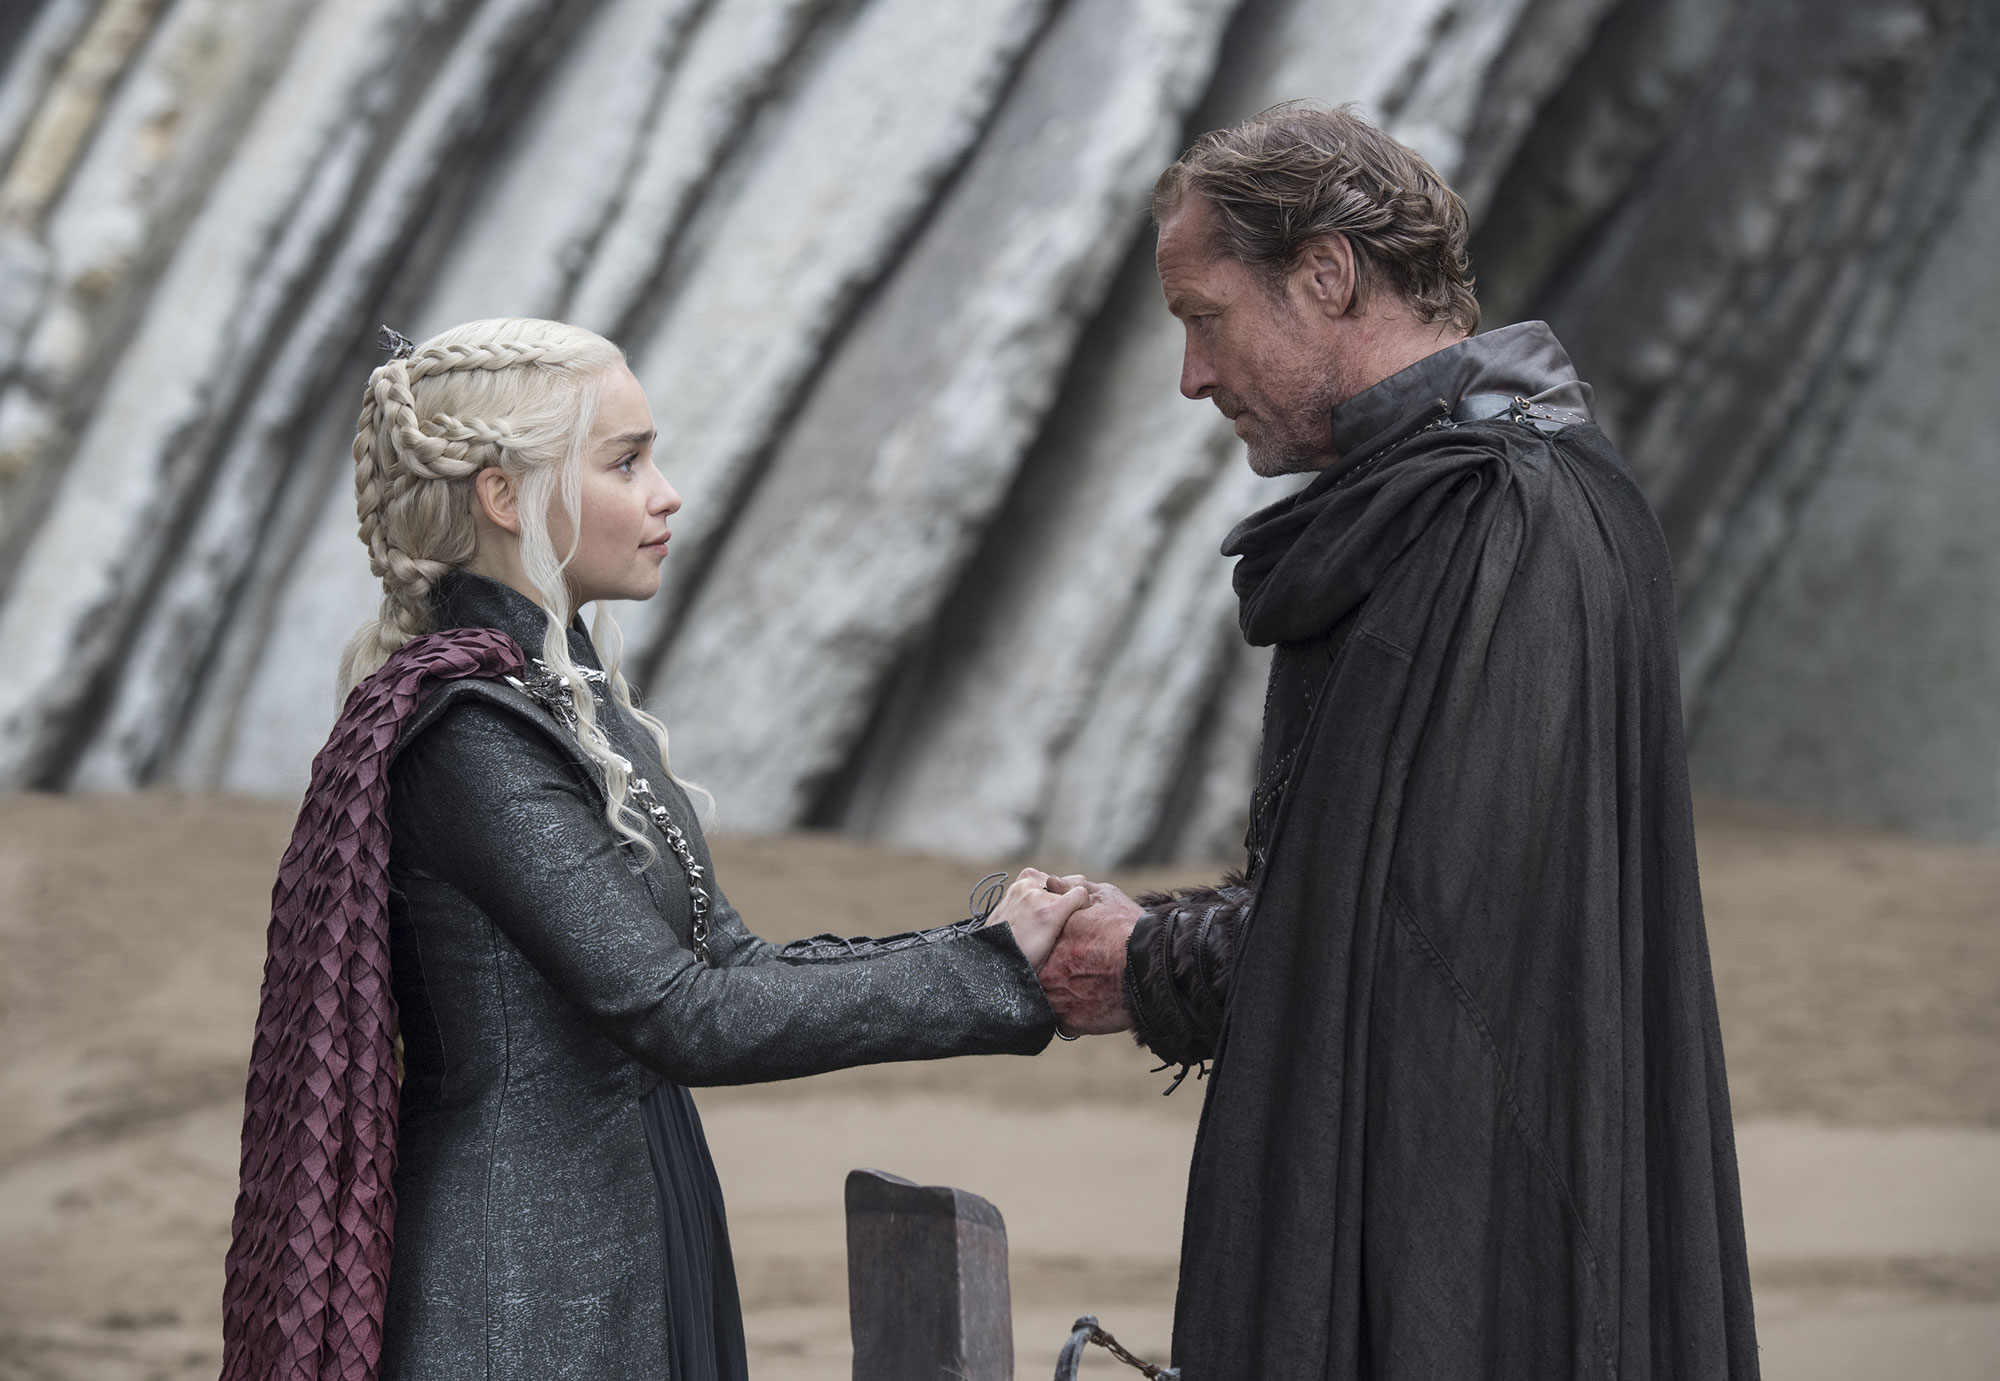 Game of Thrones braids hairstyles hair Emilia Clarke, Iain Glen. - In season seven, she criss-crossed her plaits into an intricate woven pattern.